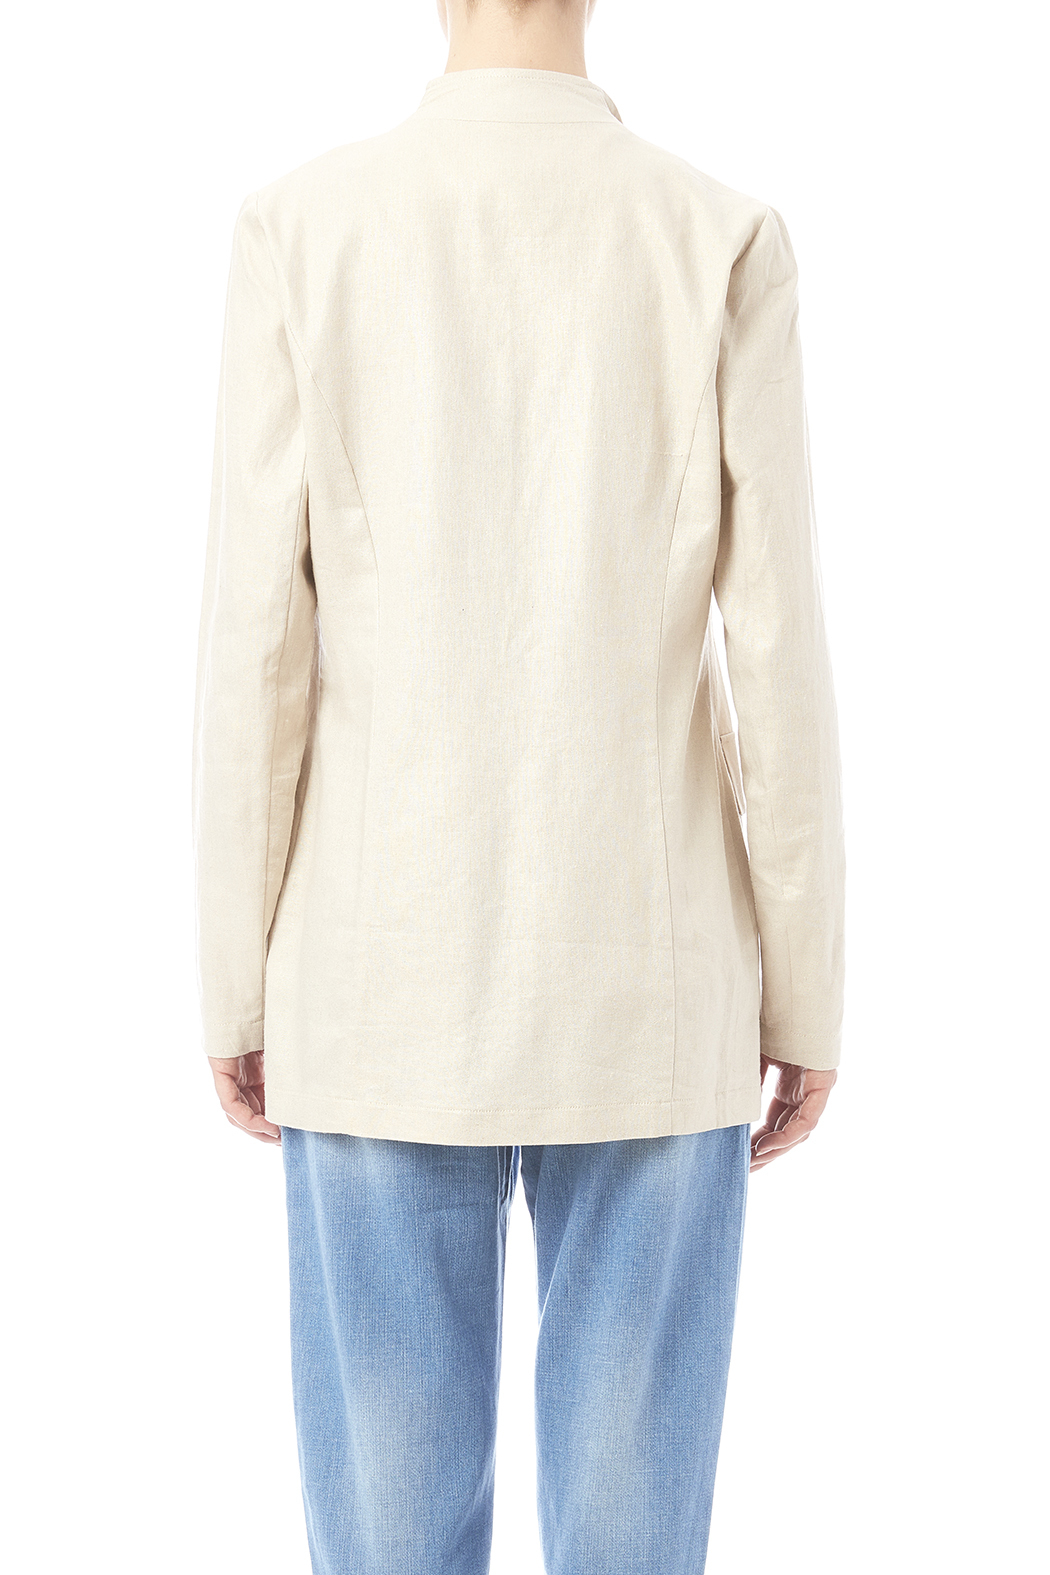 Katherine Barclay Metallic Linen Jacket - Back Cropped Image